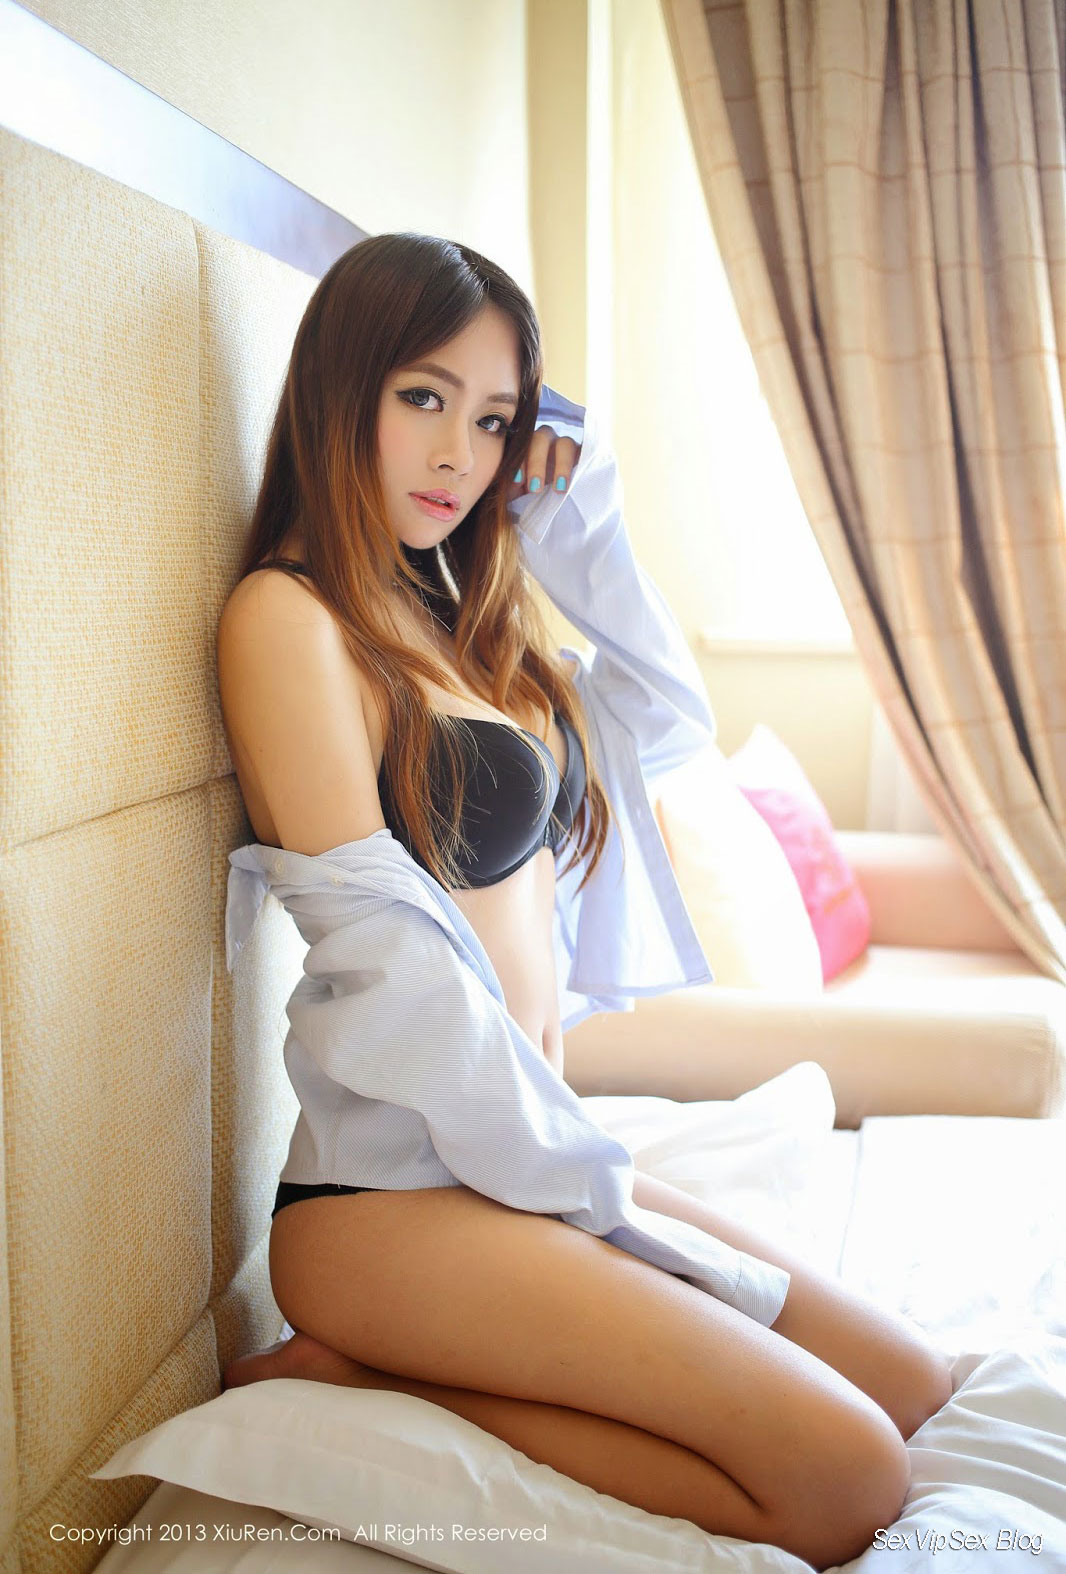 Seems Chinese girls sex blog